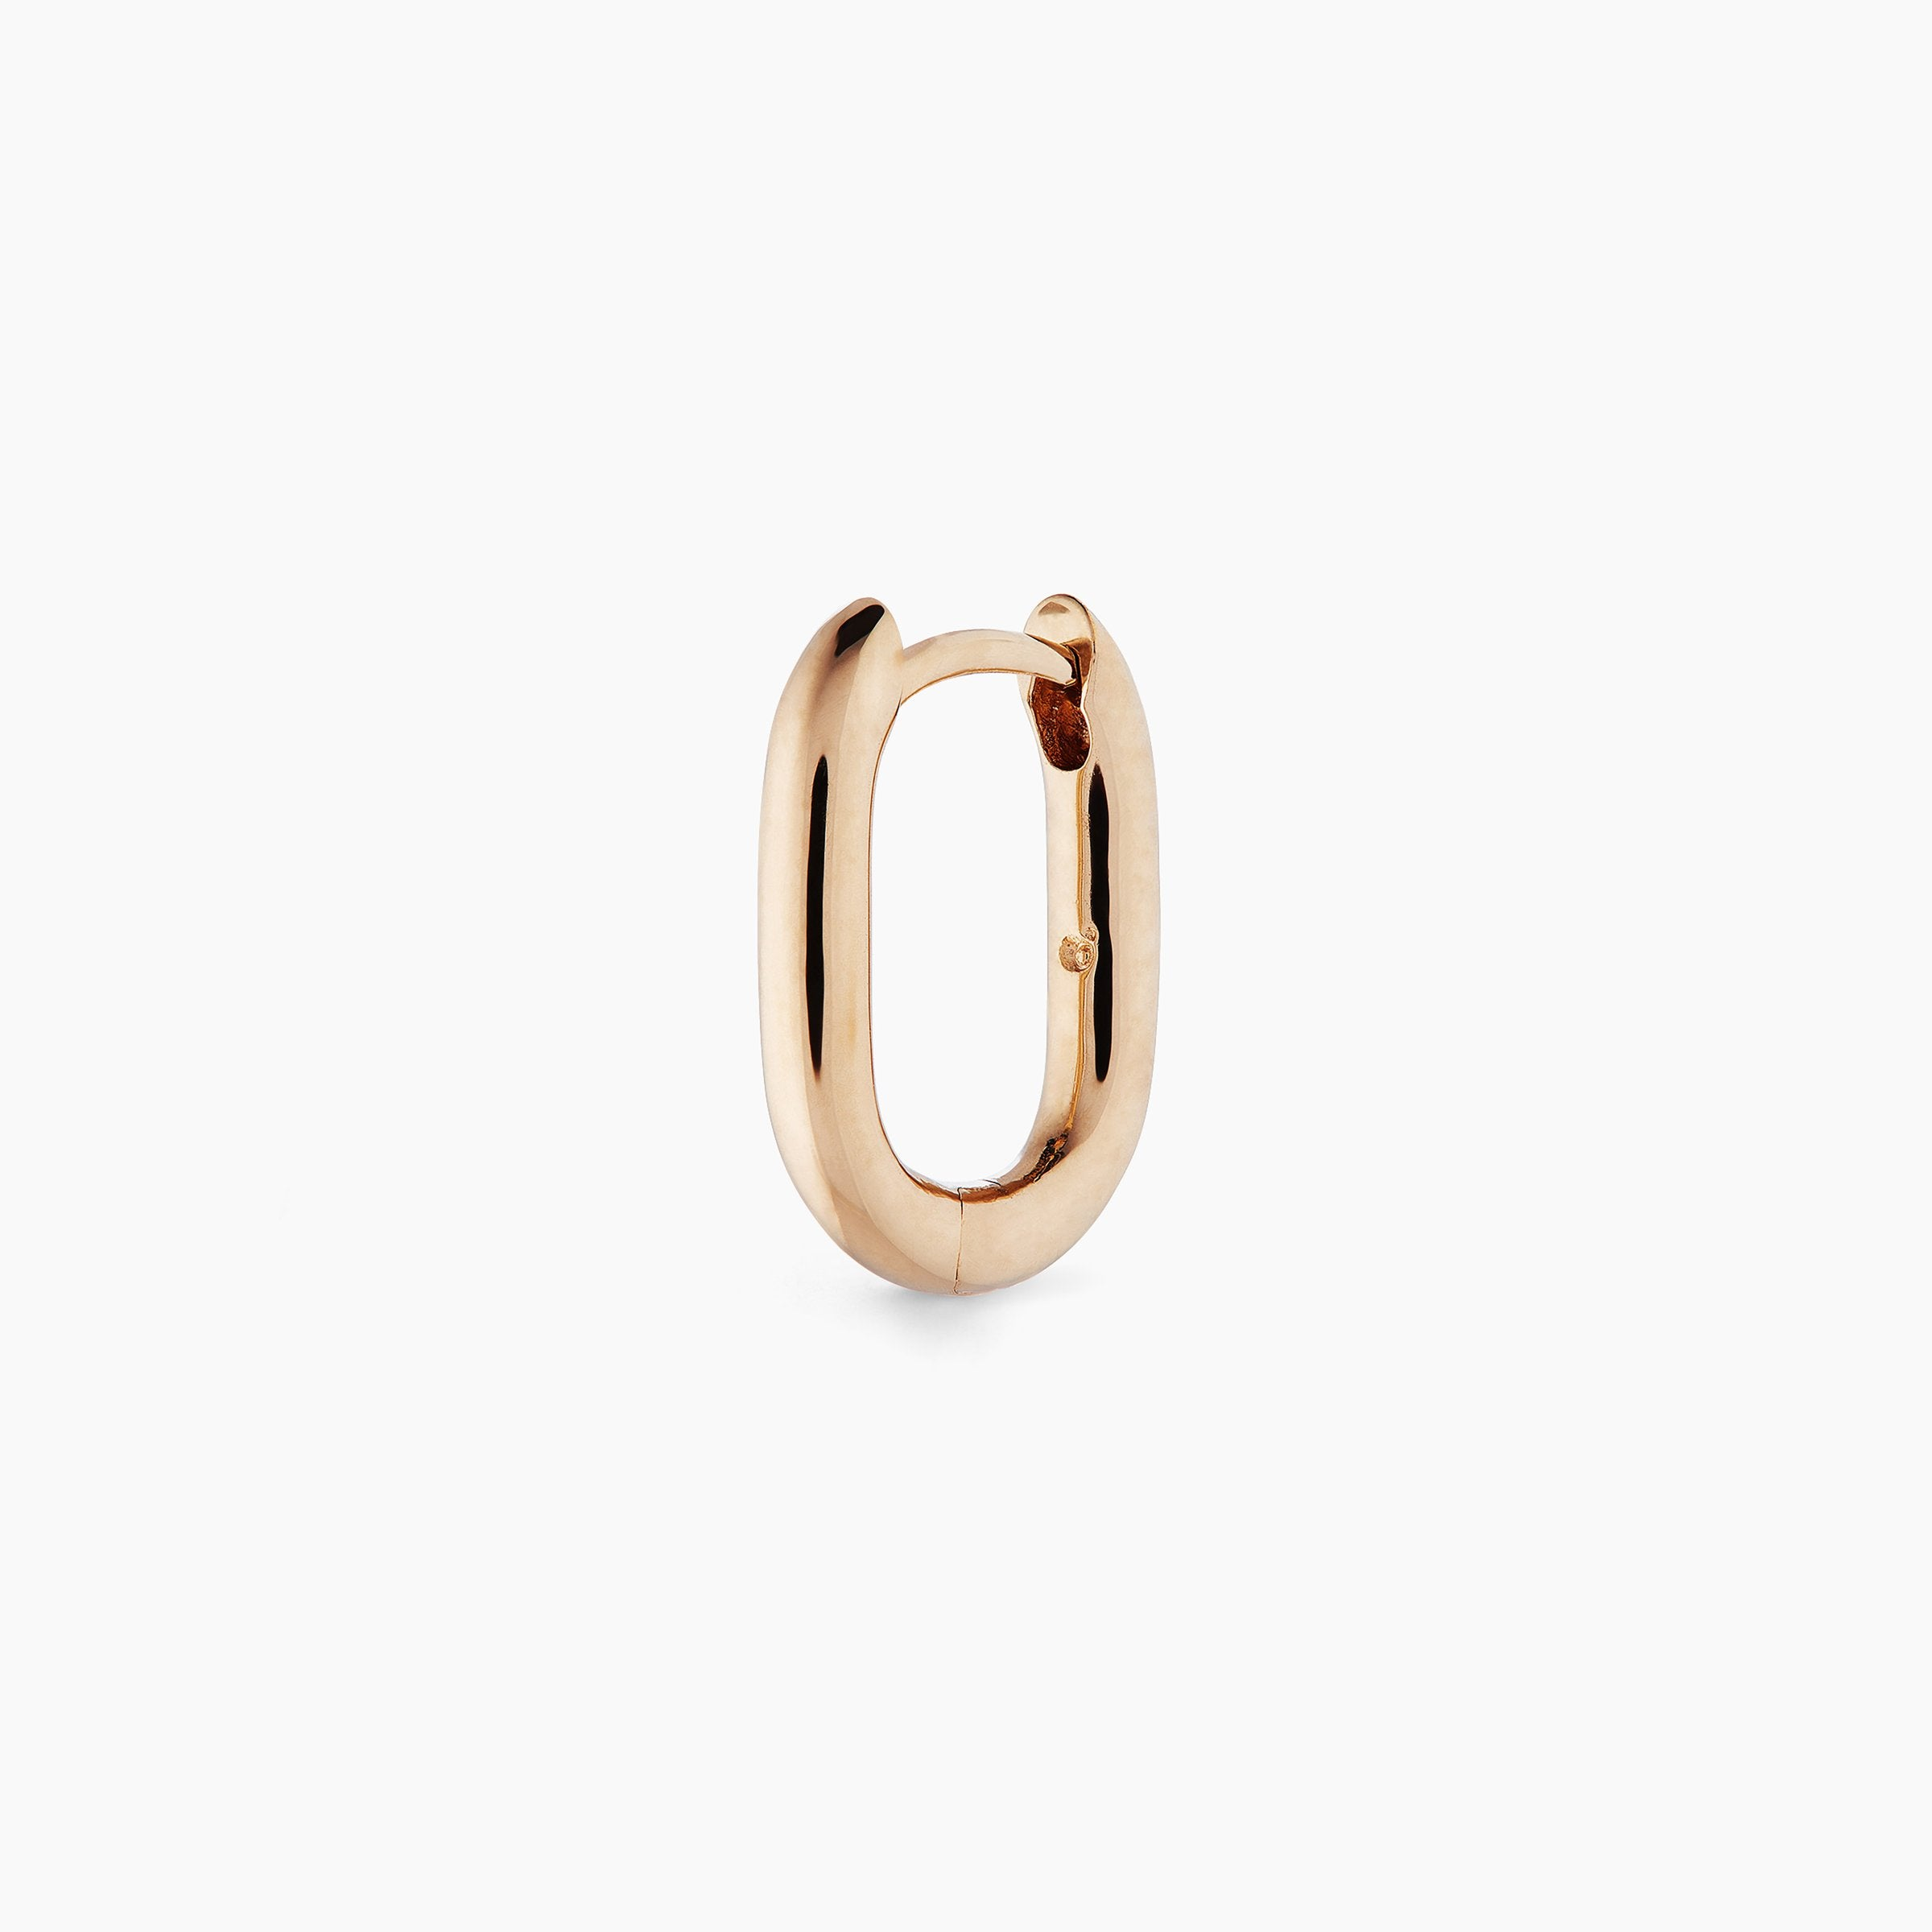 Small Gold Earring Yellow Gold Vermeil